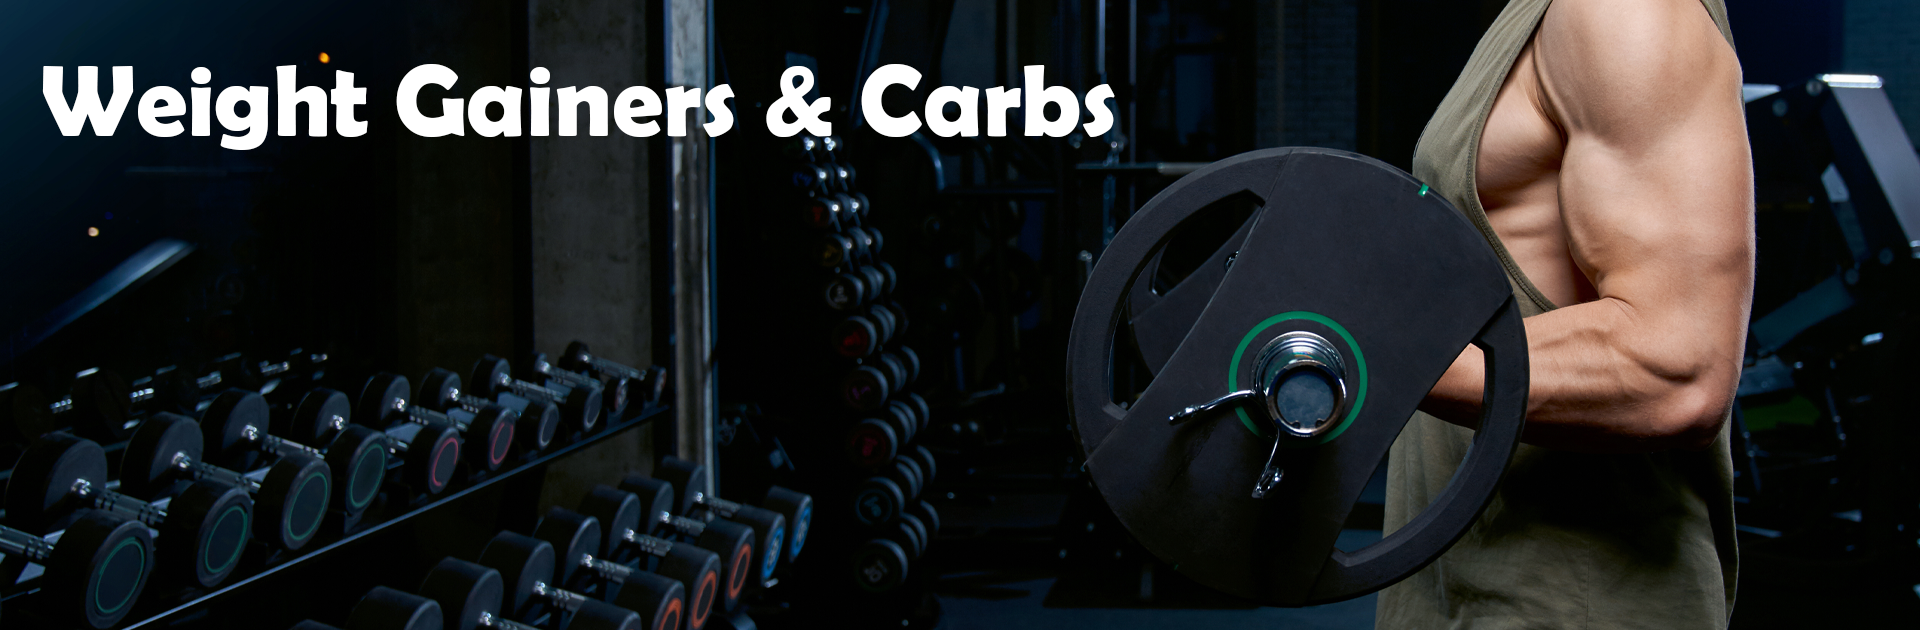 Weight Gainers & Carbs